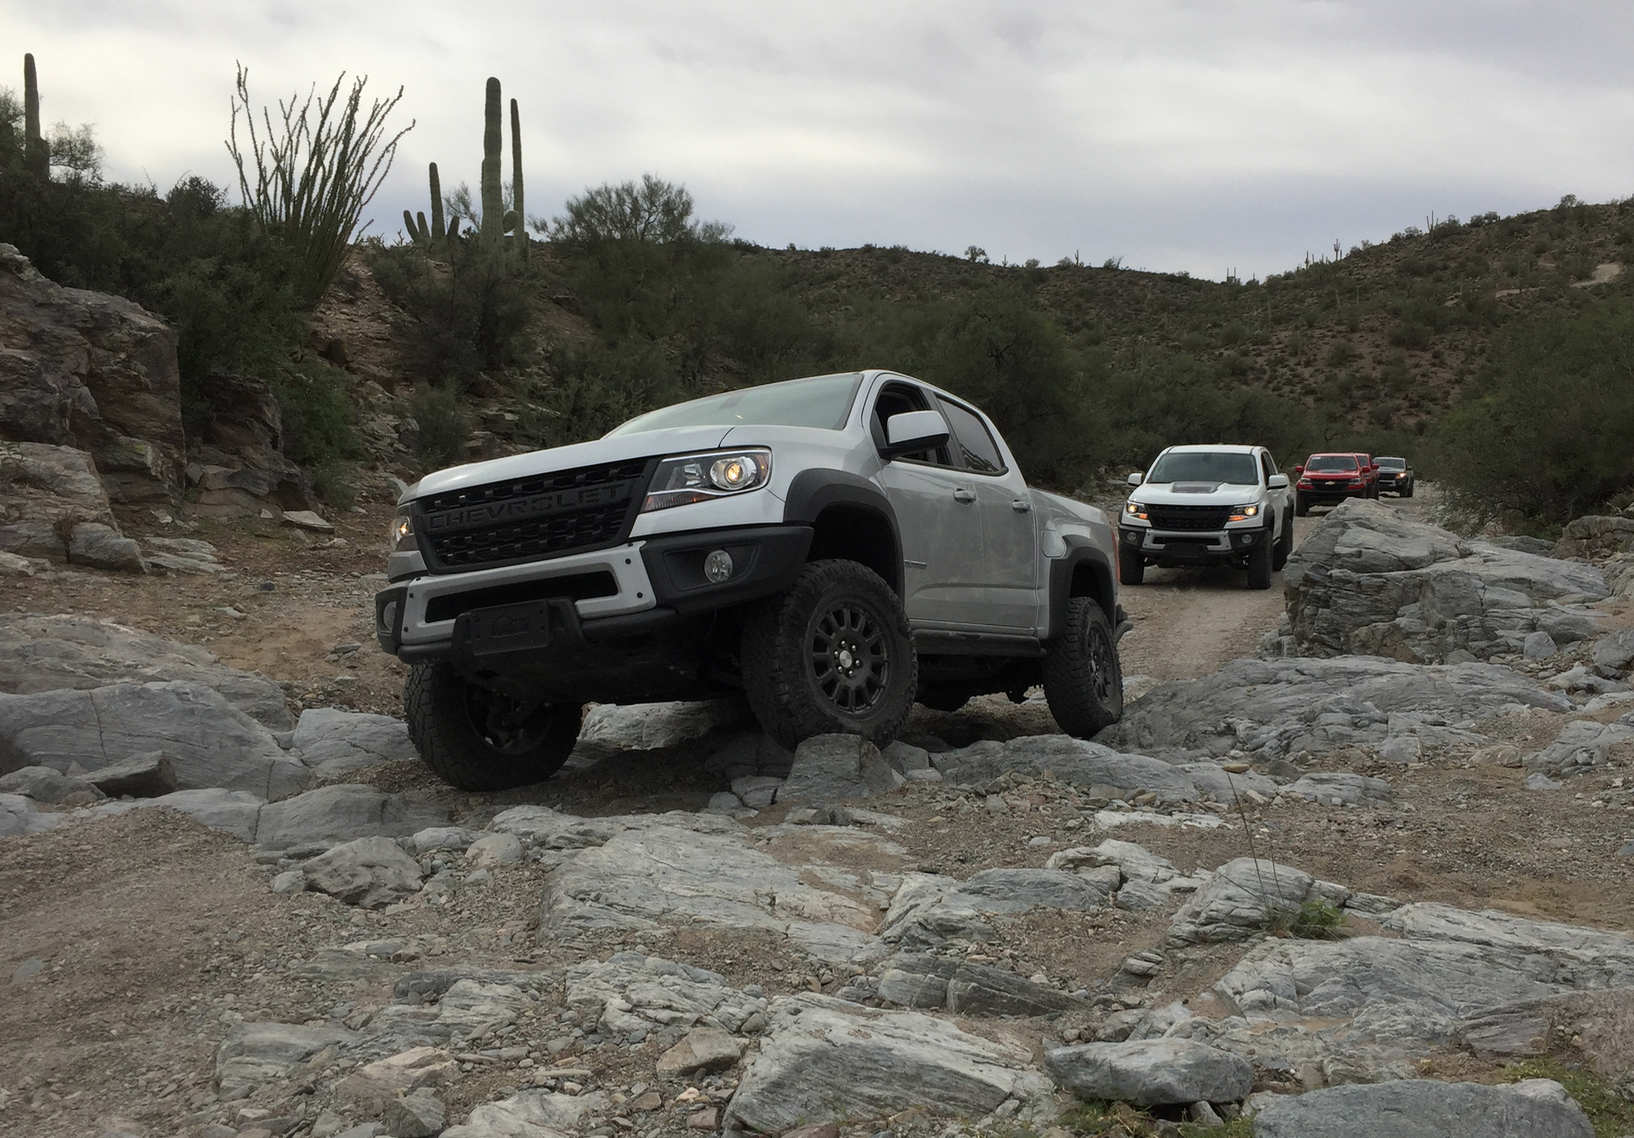 Test drive video: 2019 Chevy Colorado ZR2 Bison at home on tough Arizona trails | Medium Duty ...